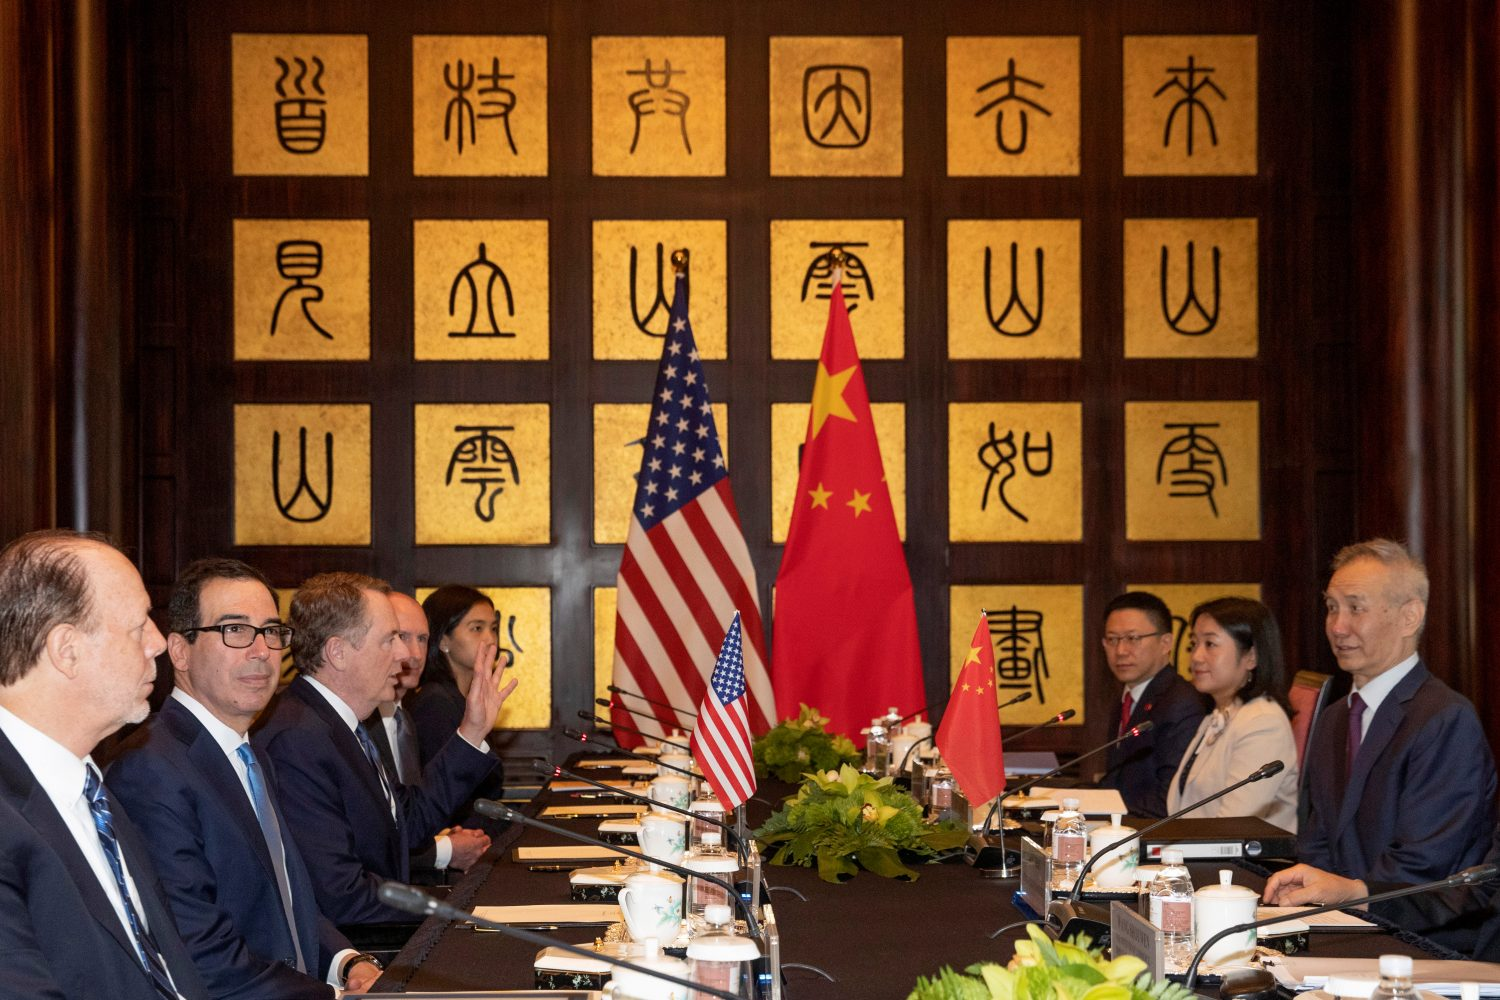 Chinese Vice Premier Liu He, at right, looks over as United States Trade Representative Robert Lighthizer, third from left gestures near Treasury Secretary Steve Mnuchin, second from left before the start of talks at the Xijiao Conference Center in Shanghai, China July 31, 2019. Ng Han Guan/Pool via REUTERS